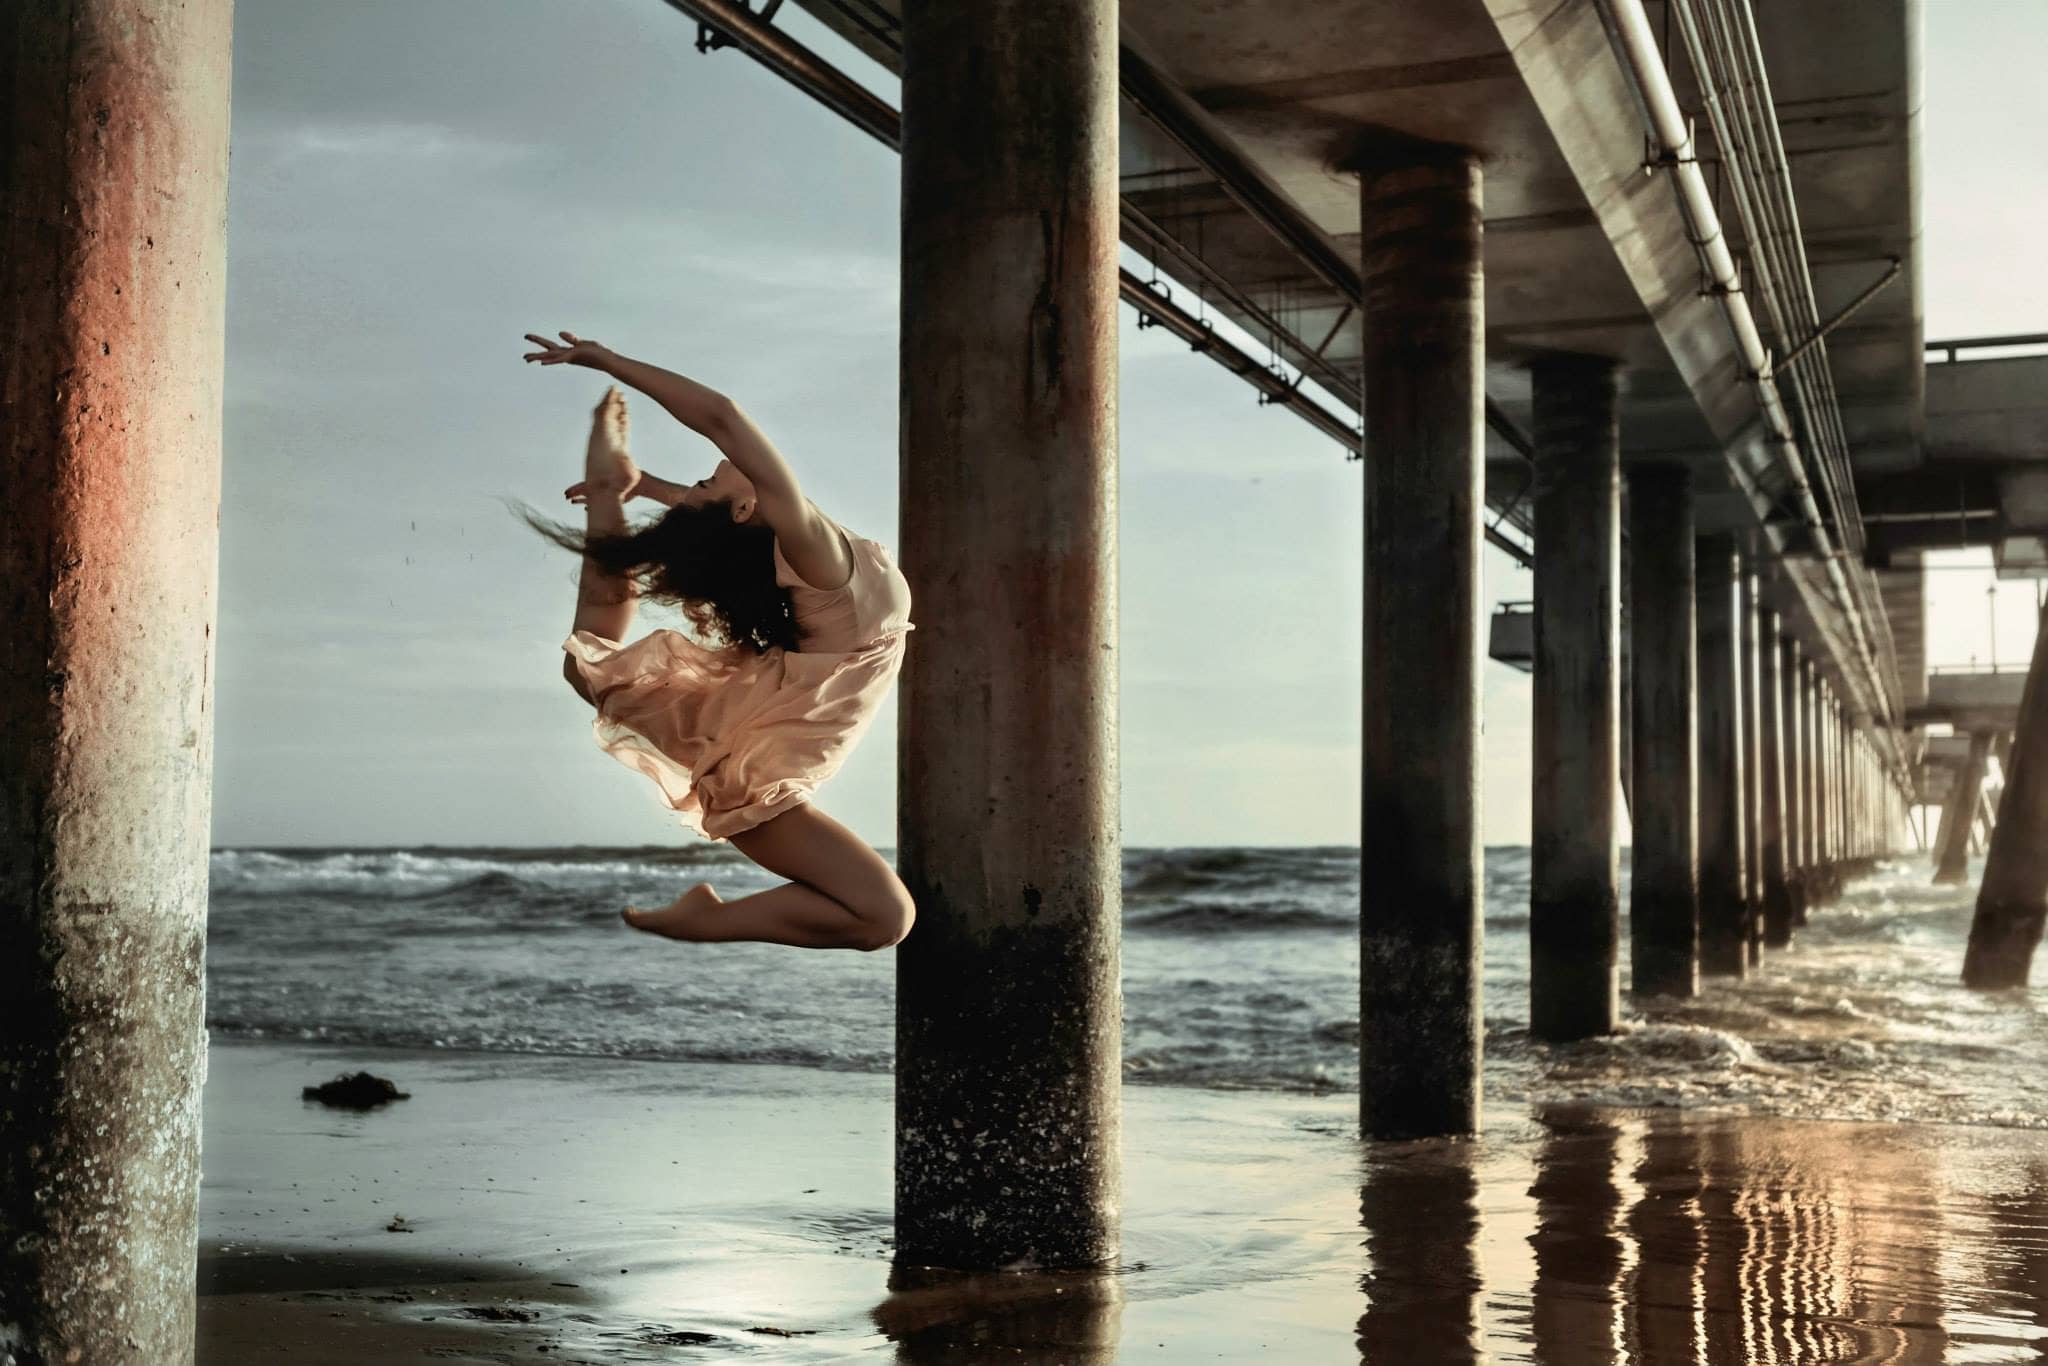 A Russian dream, story of olga and her dreams by the best creative photographer Arjun Kamath-15